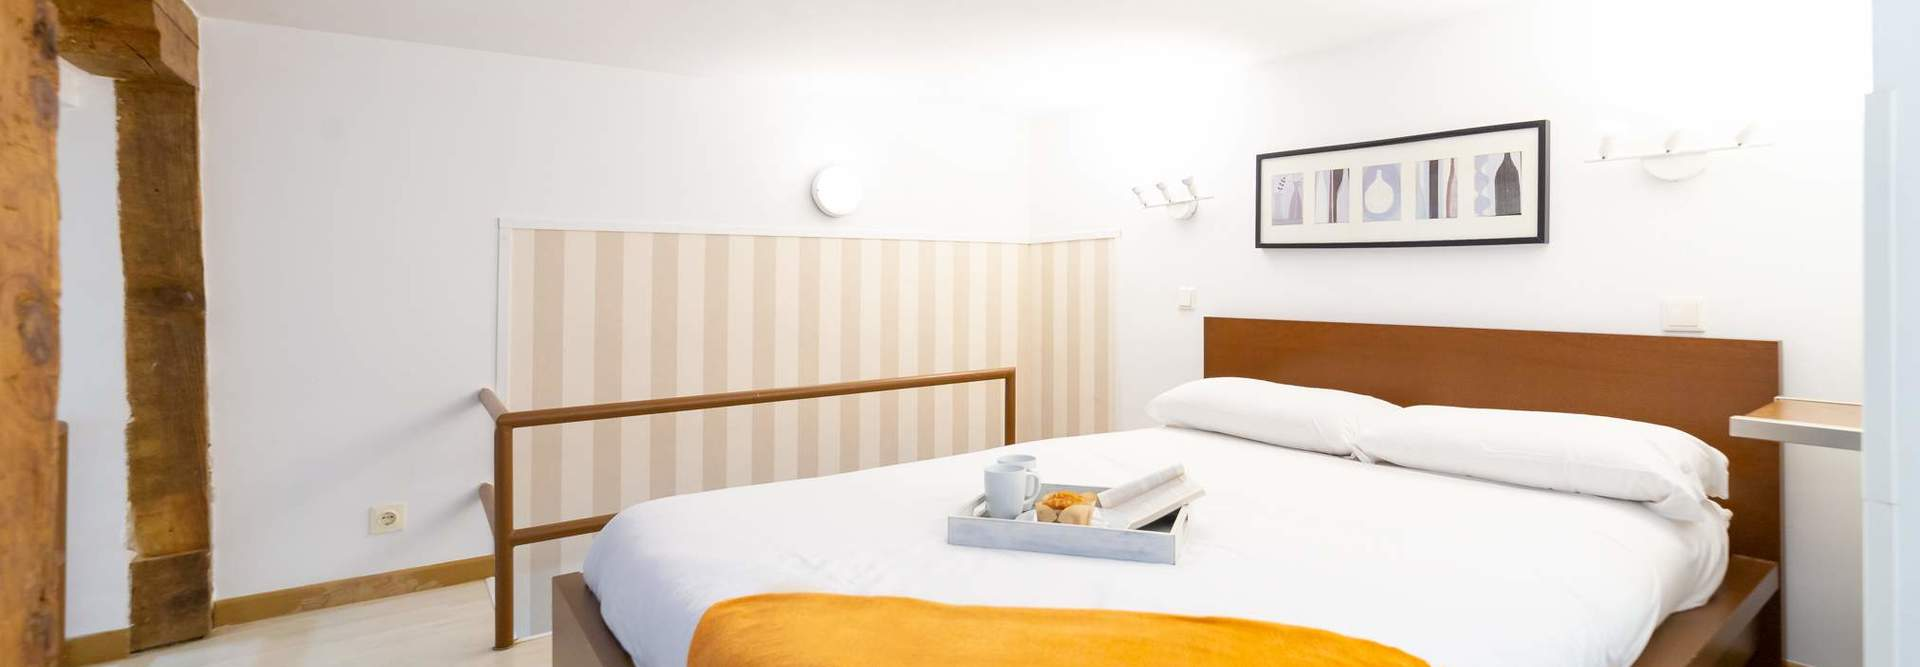 Home alquiler apartamentos madrid mad4rent 07